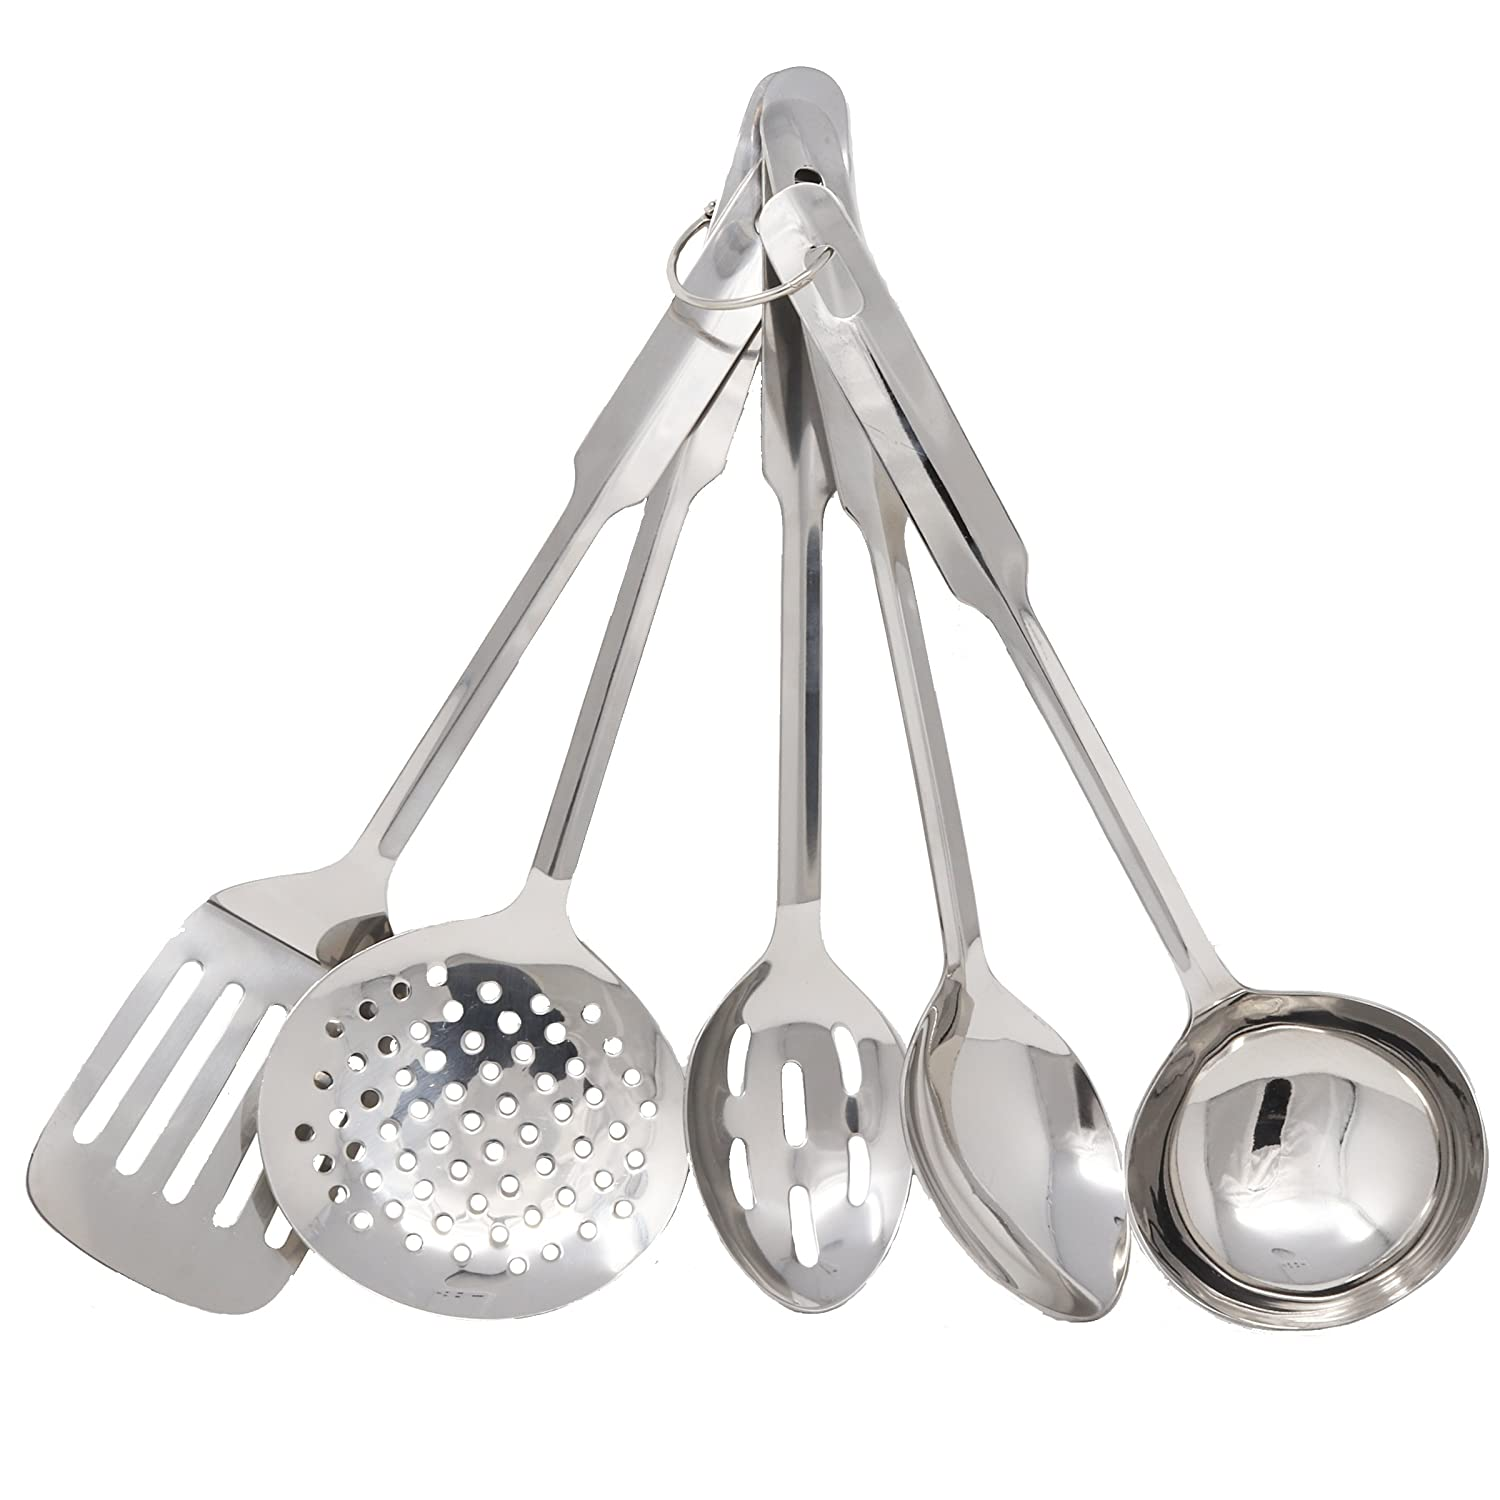 Amco 8796 Stainless Steel 5-Piece Utensil Set,Medium